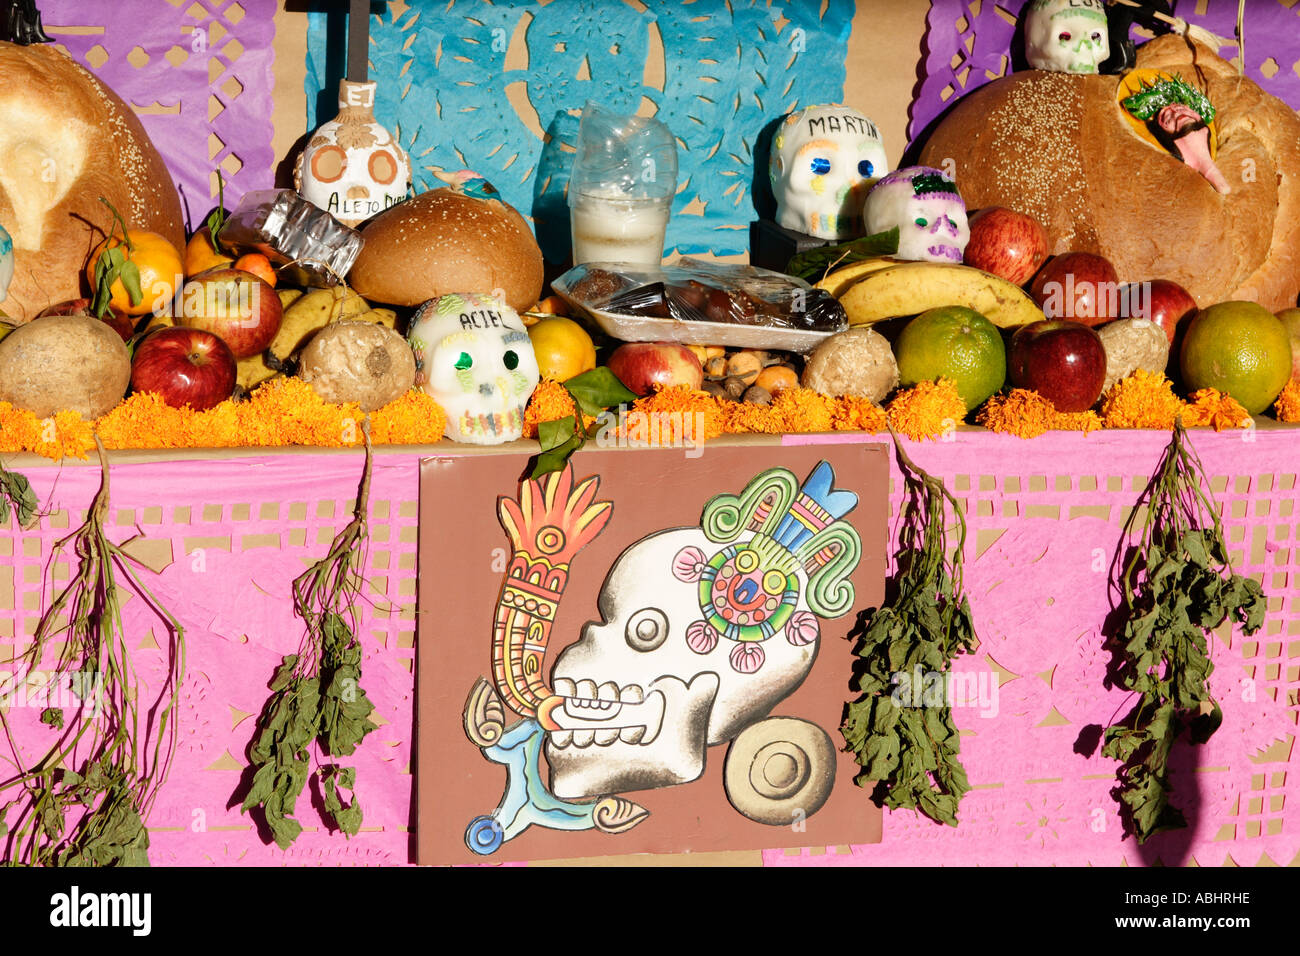 Offerings Altar Day Of The Dead Festival Monte Alban Mexico